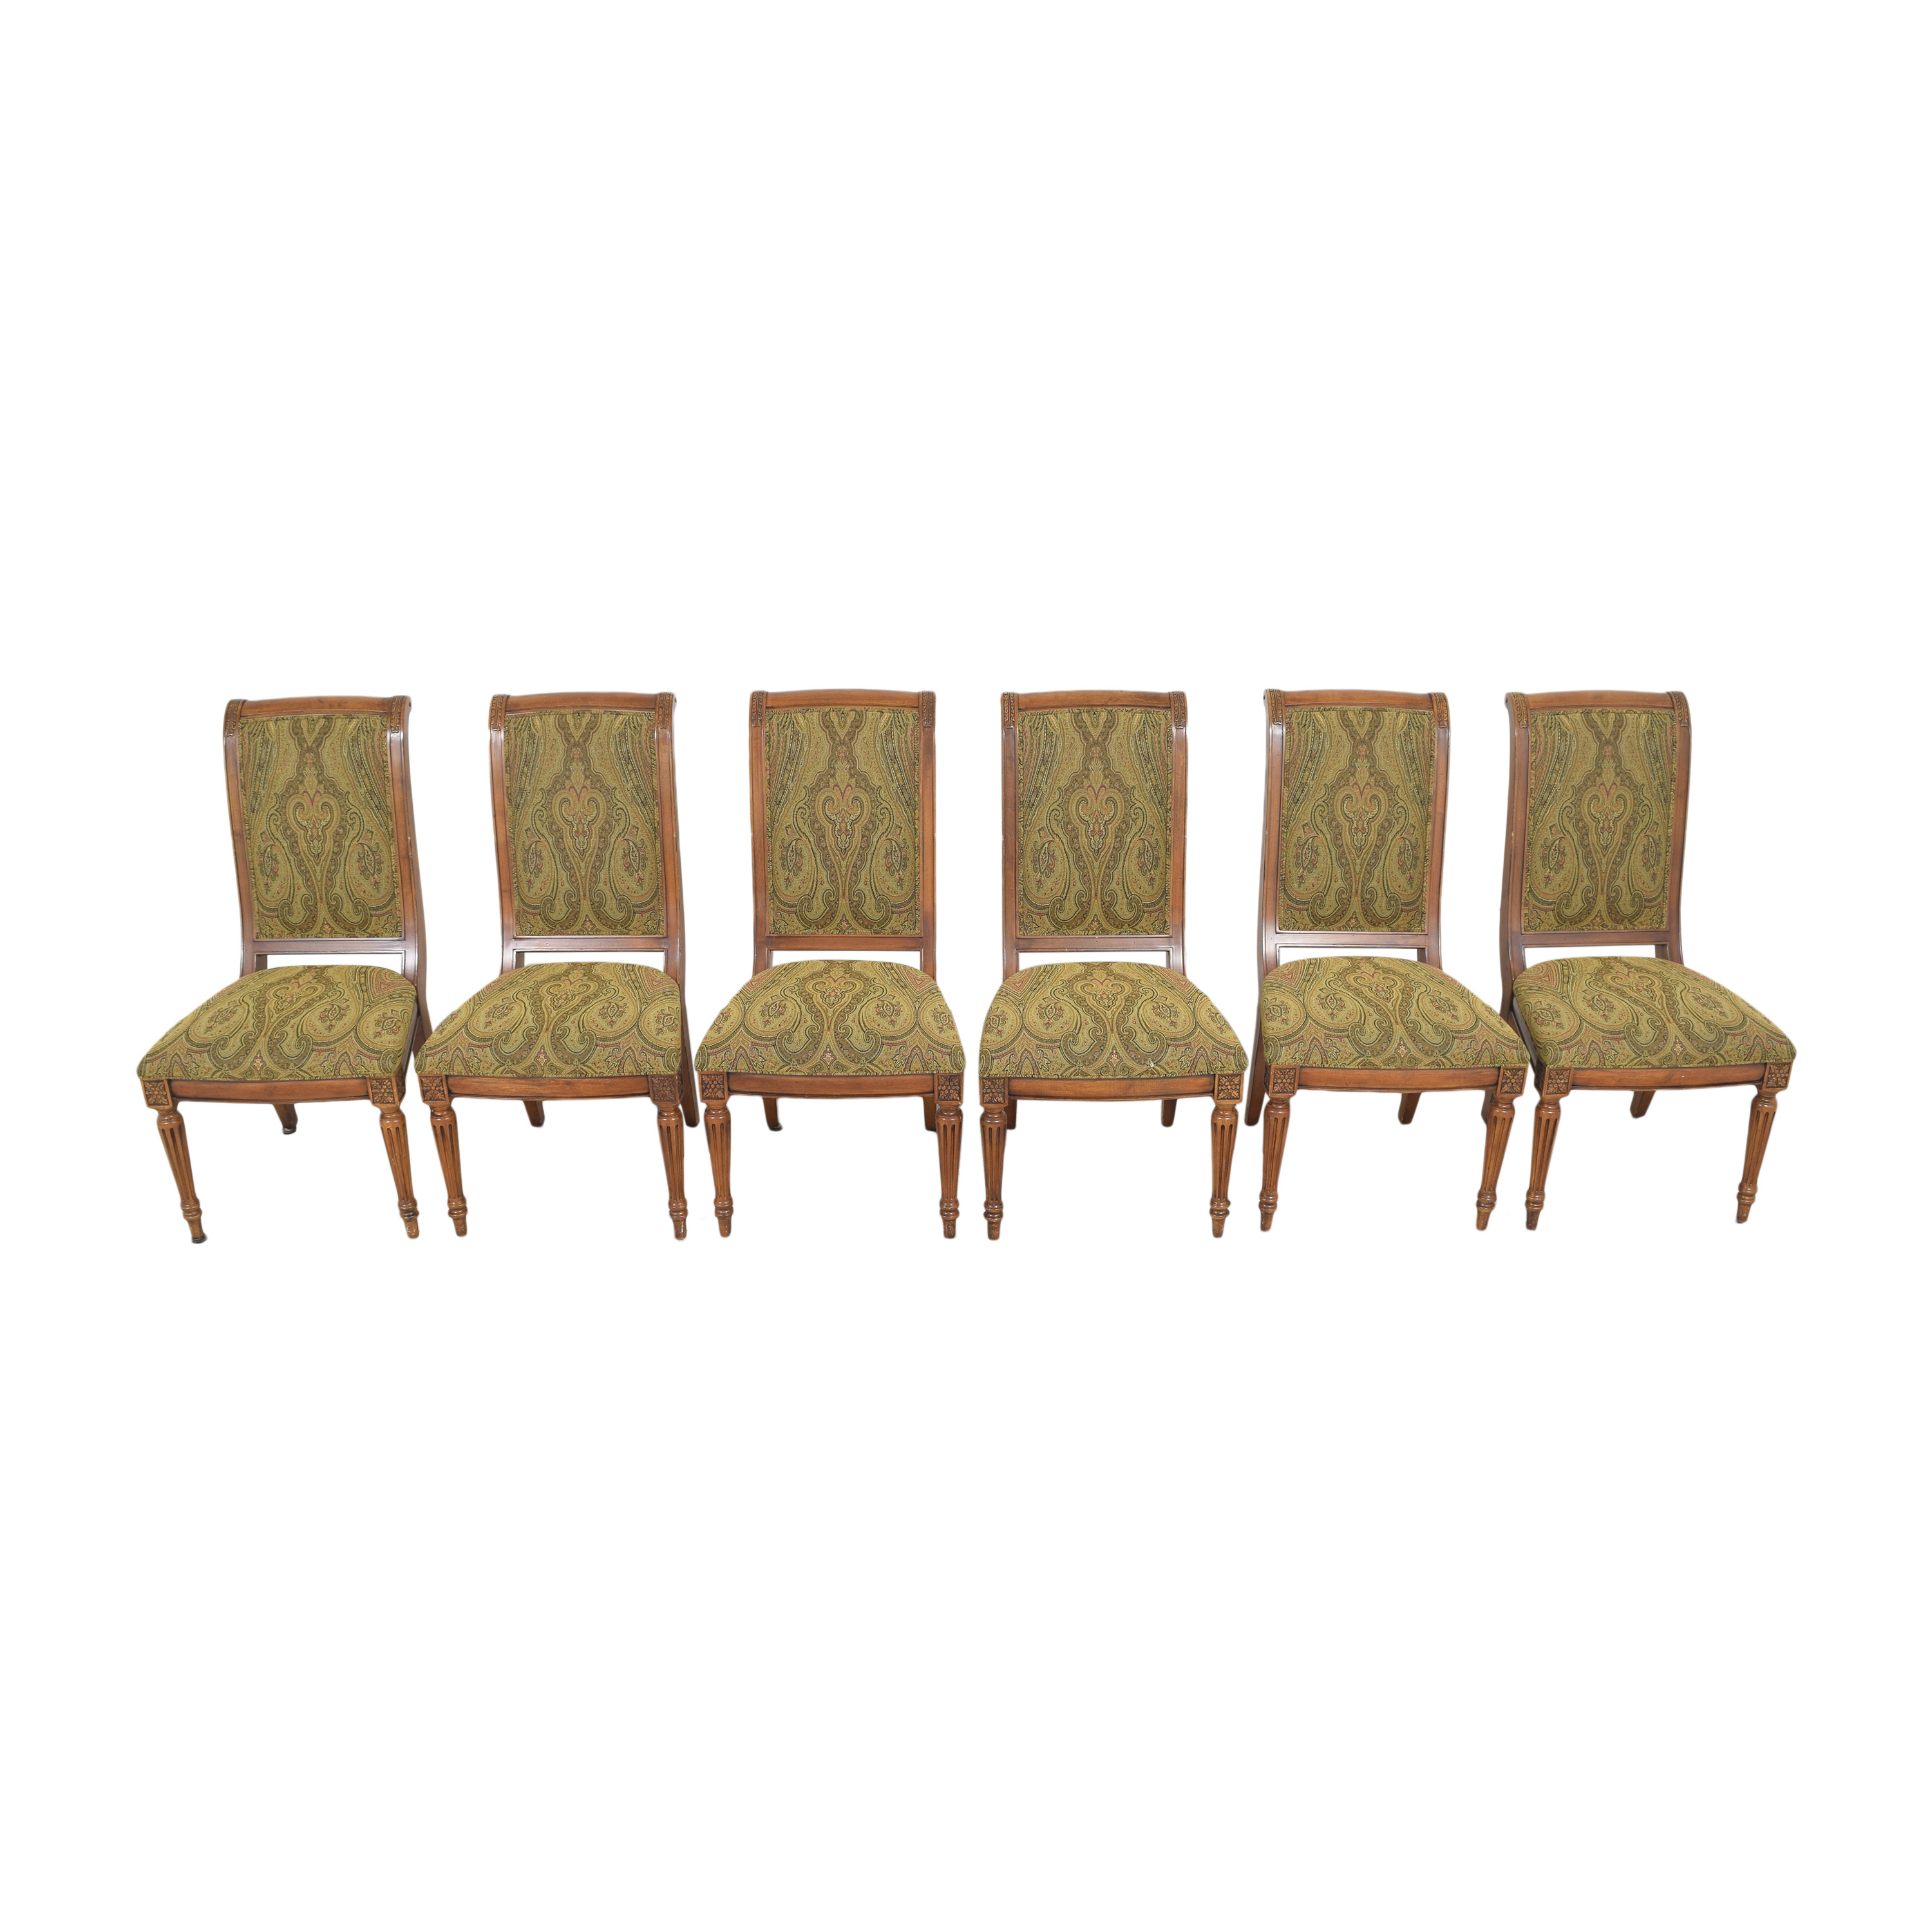 Ethan Allen Ethan Allen Adison Dining Side Chairs Chairs